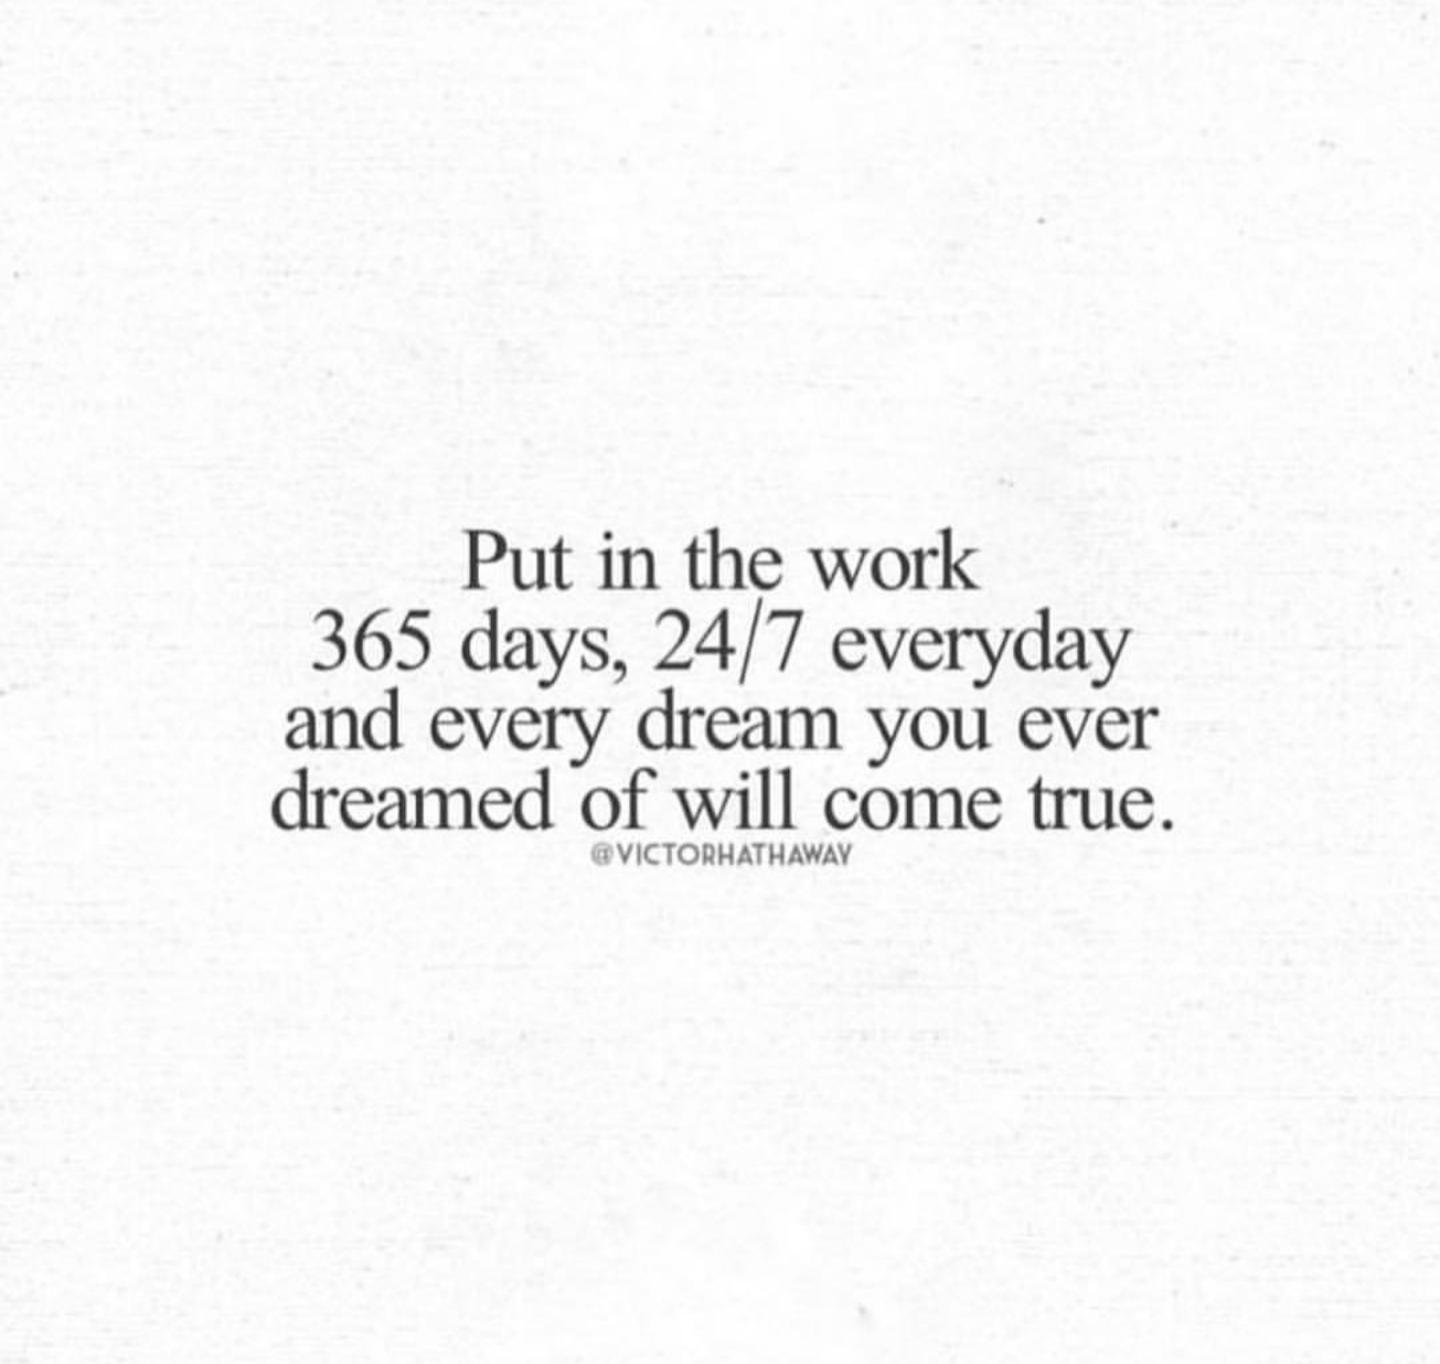 [Image] Put in the work.